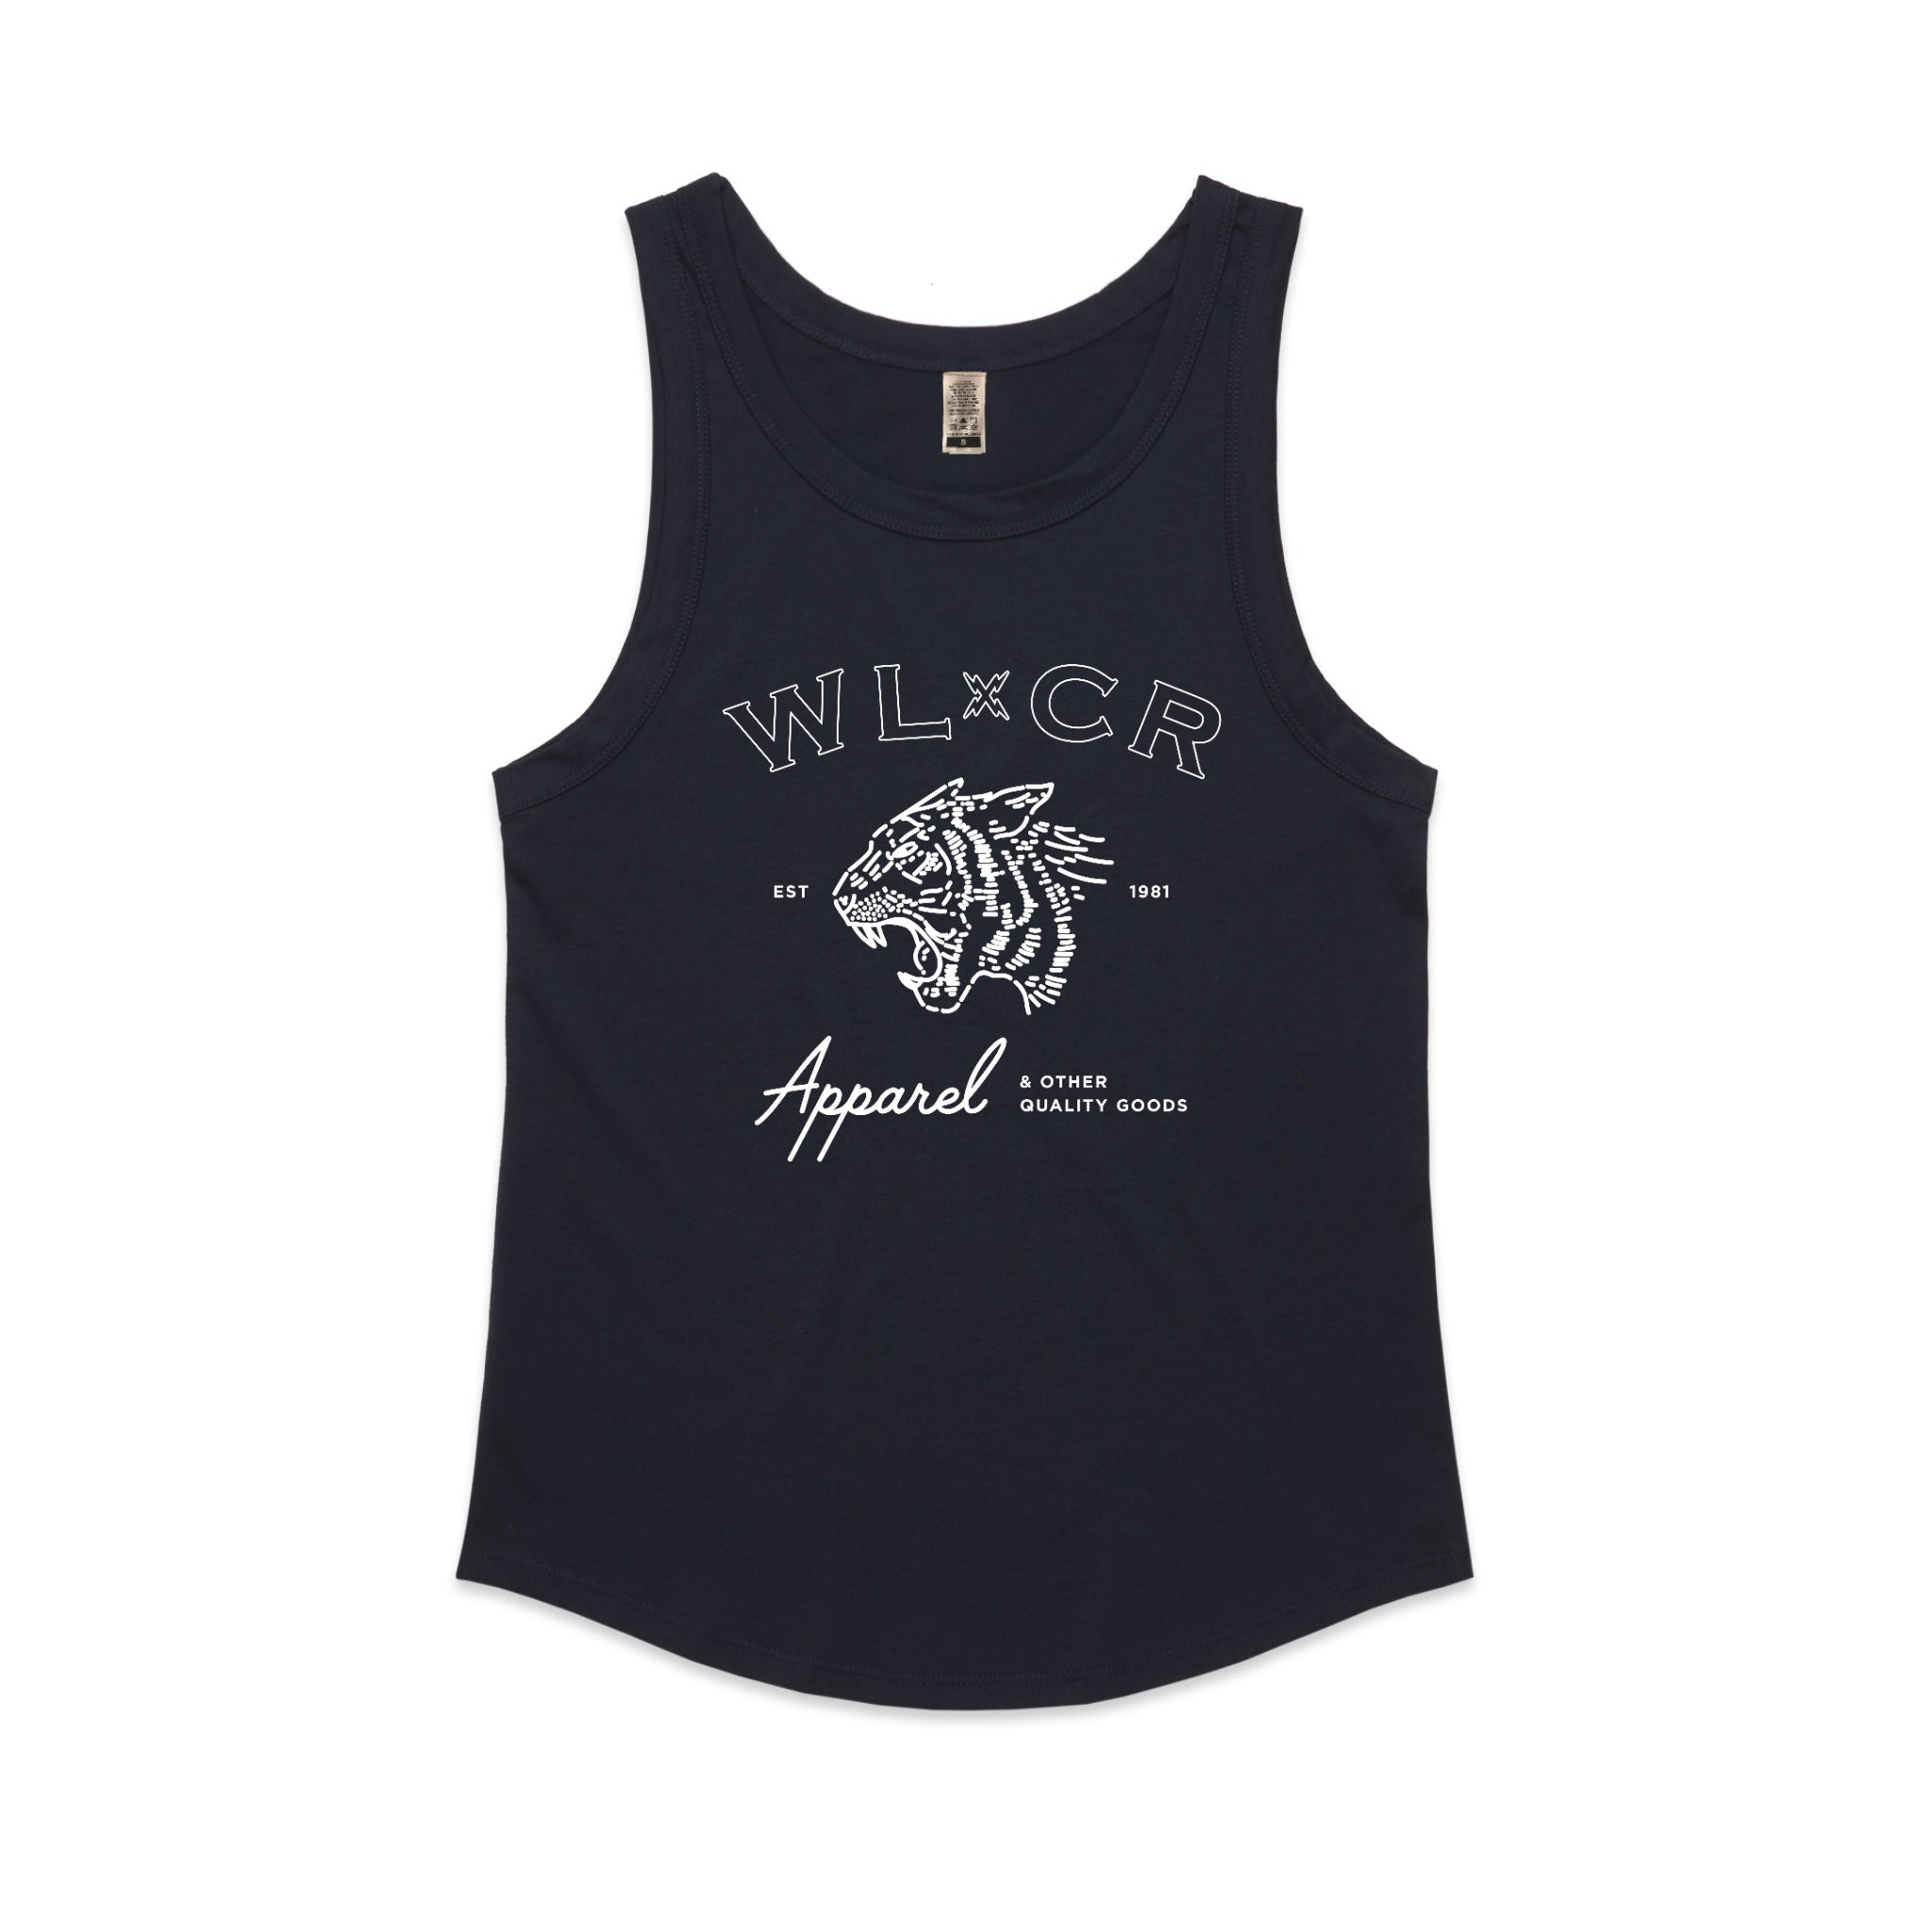 Women's WLCR Easy Tiger Vest - Navy